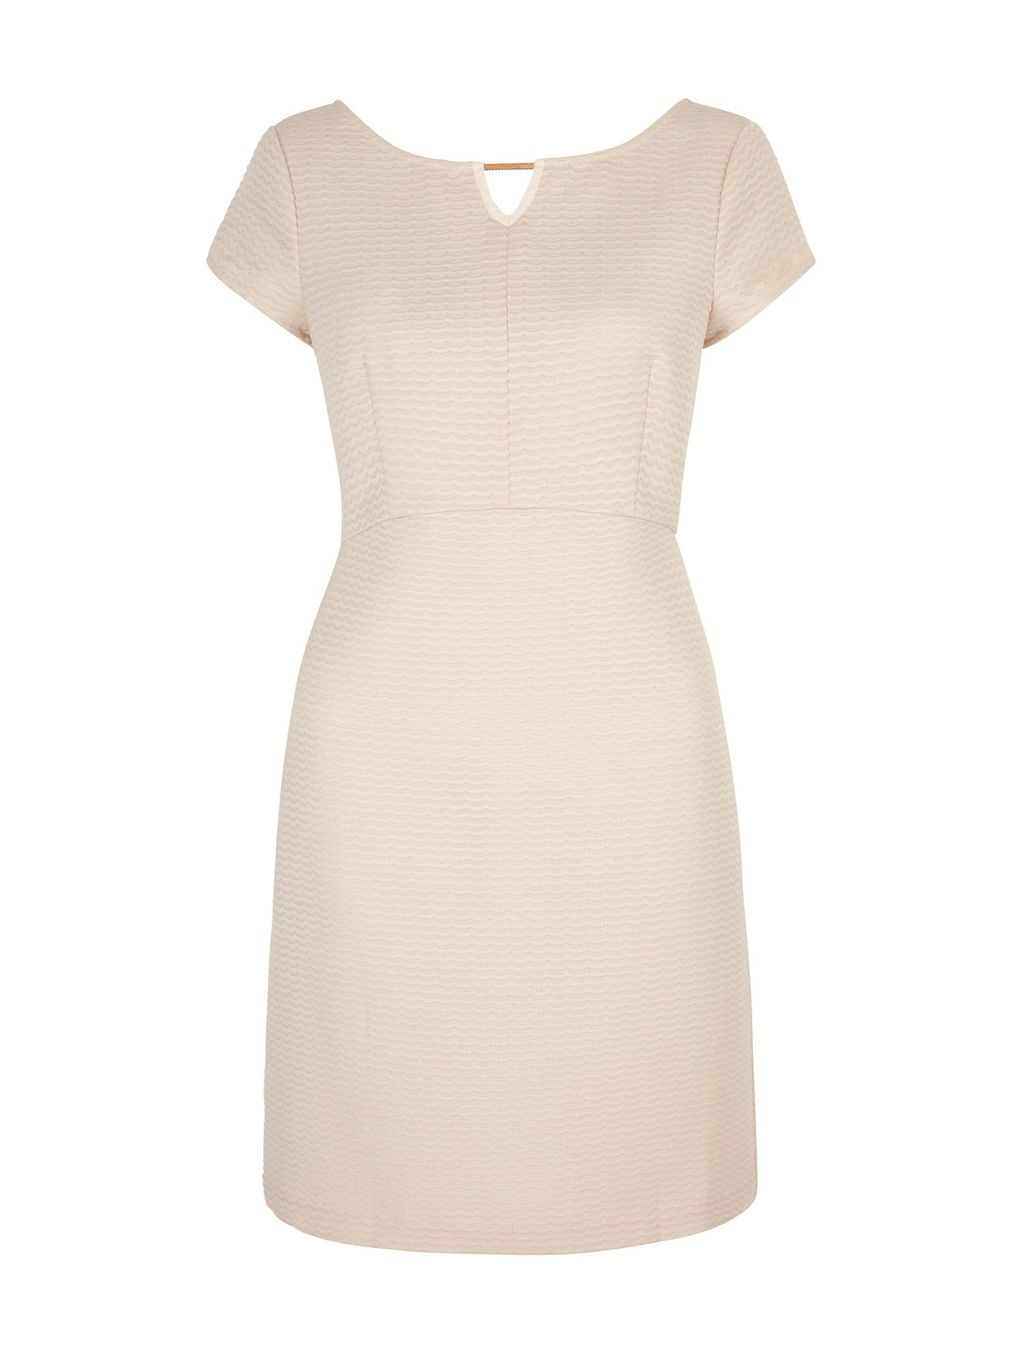 Textured Babydoll Party Dress, Beige - style: shift; fit: tailored/fitted; pattern: plain; predominant colour: stone; occasions: evening; length: just above the knee; neckline: peep hole neckline; fibres: polyester/polyamide - 100%; sleeve length: short sleeve; sleeve style: standard; pattern type: fabric; texture group: other - light to midweight; season: s/s 2016; wardrobe: event